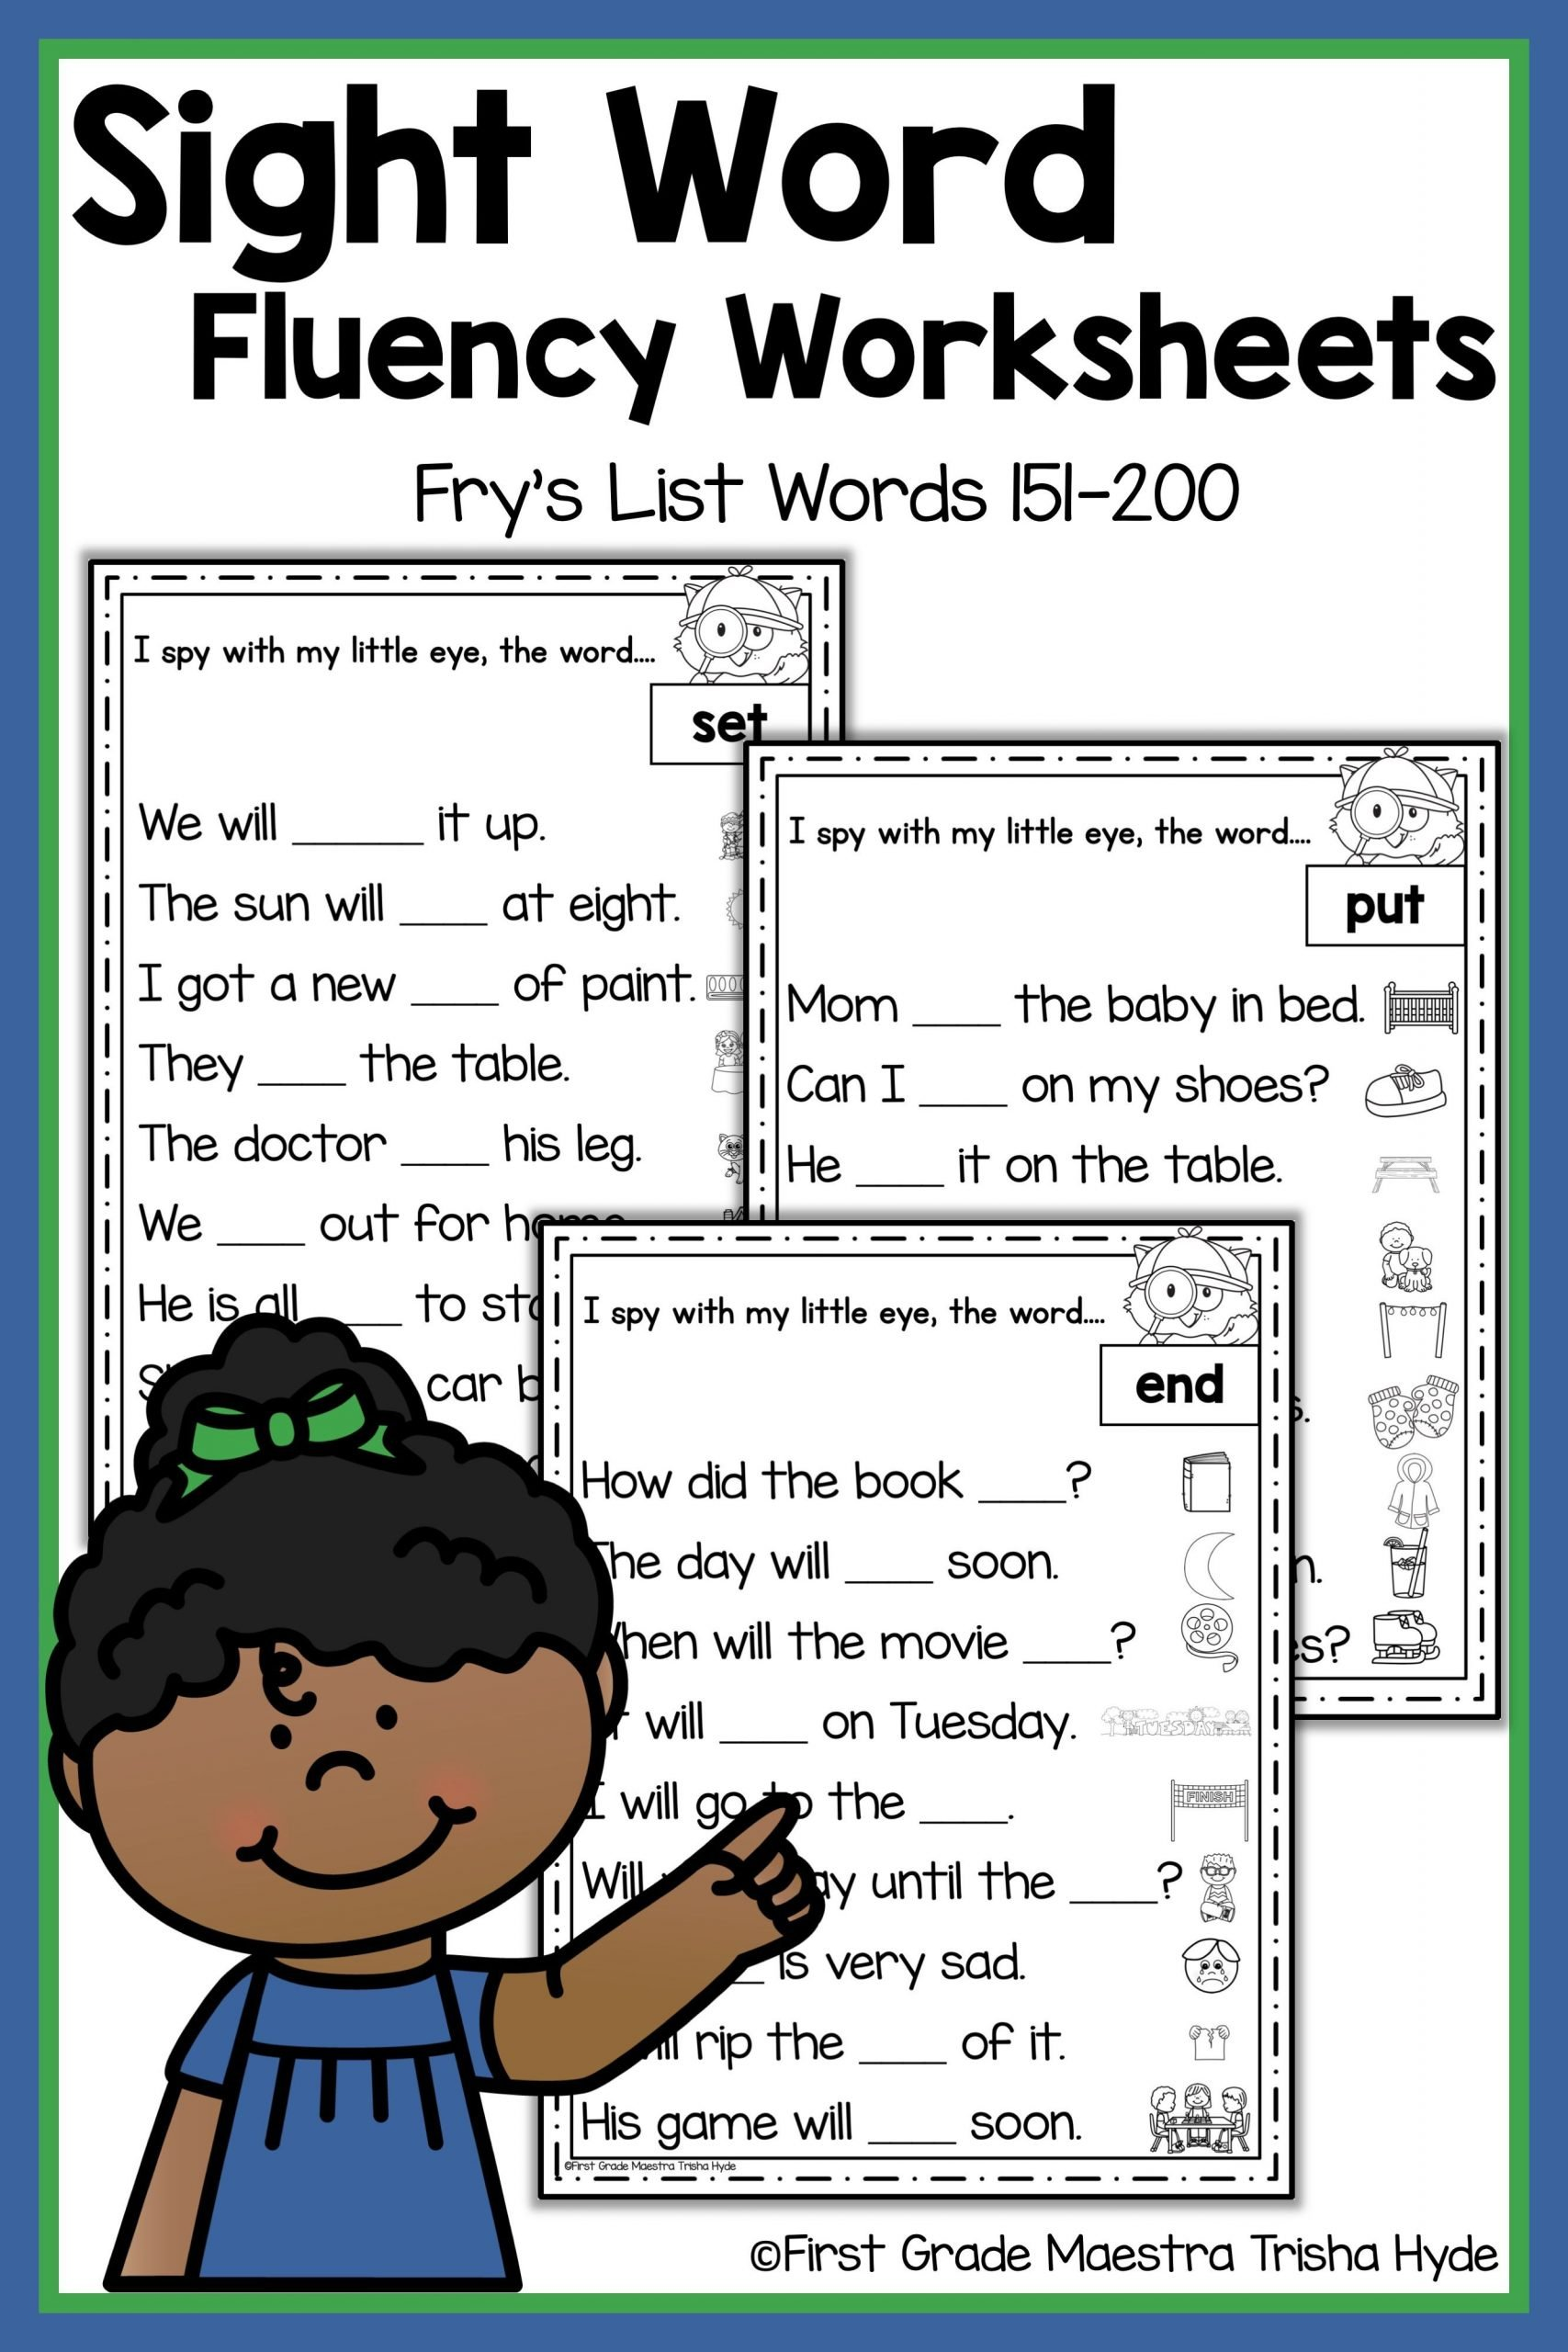 Sentence Fluency Worksheets Sight Word Fluency Worksheets Frys Words 151 to 200